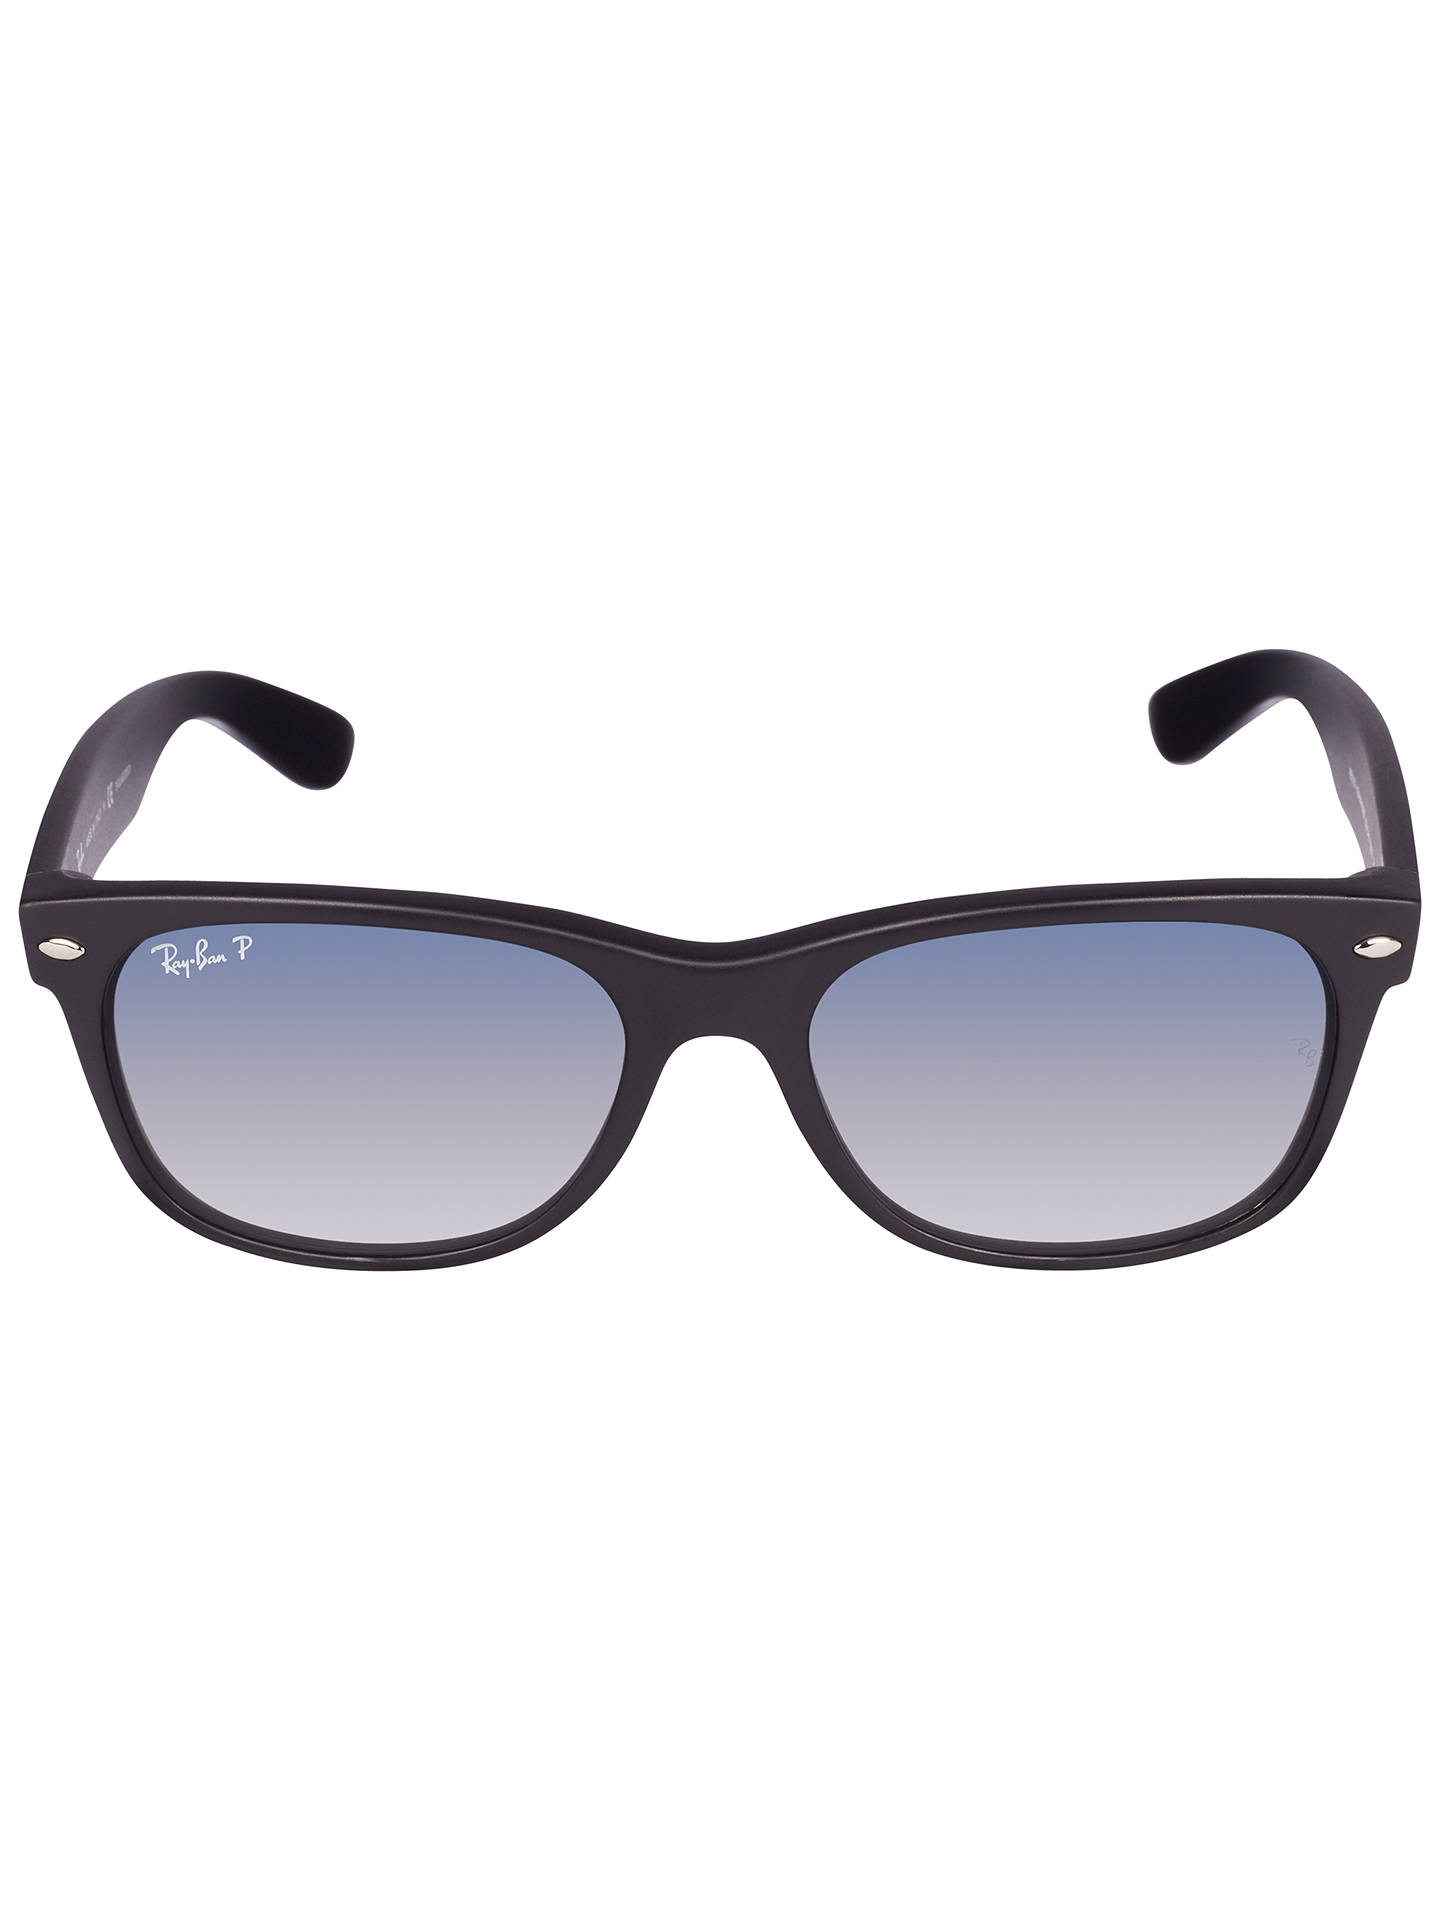 BuyRay-Ban RB2132 New Wayfarer Polarised Sunglasses, Black Online at johnlewis.com